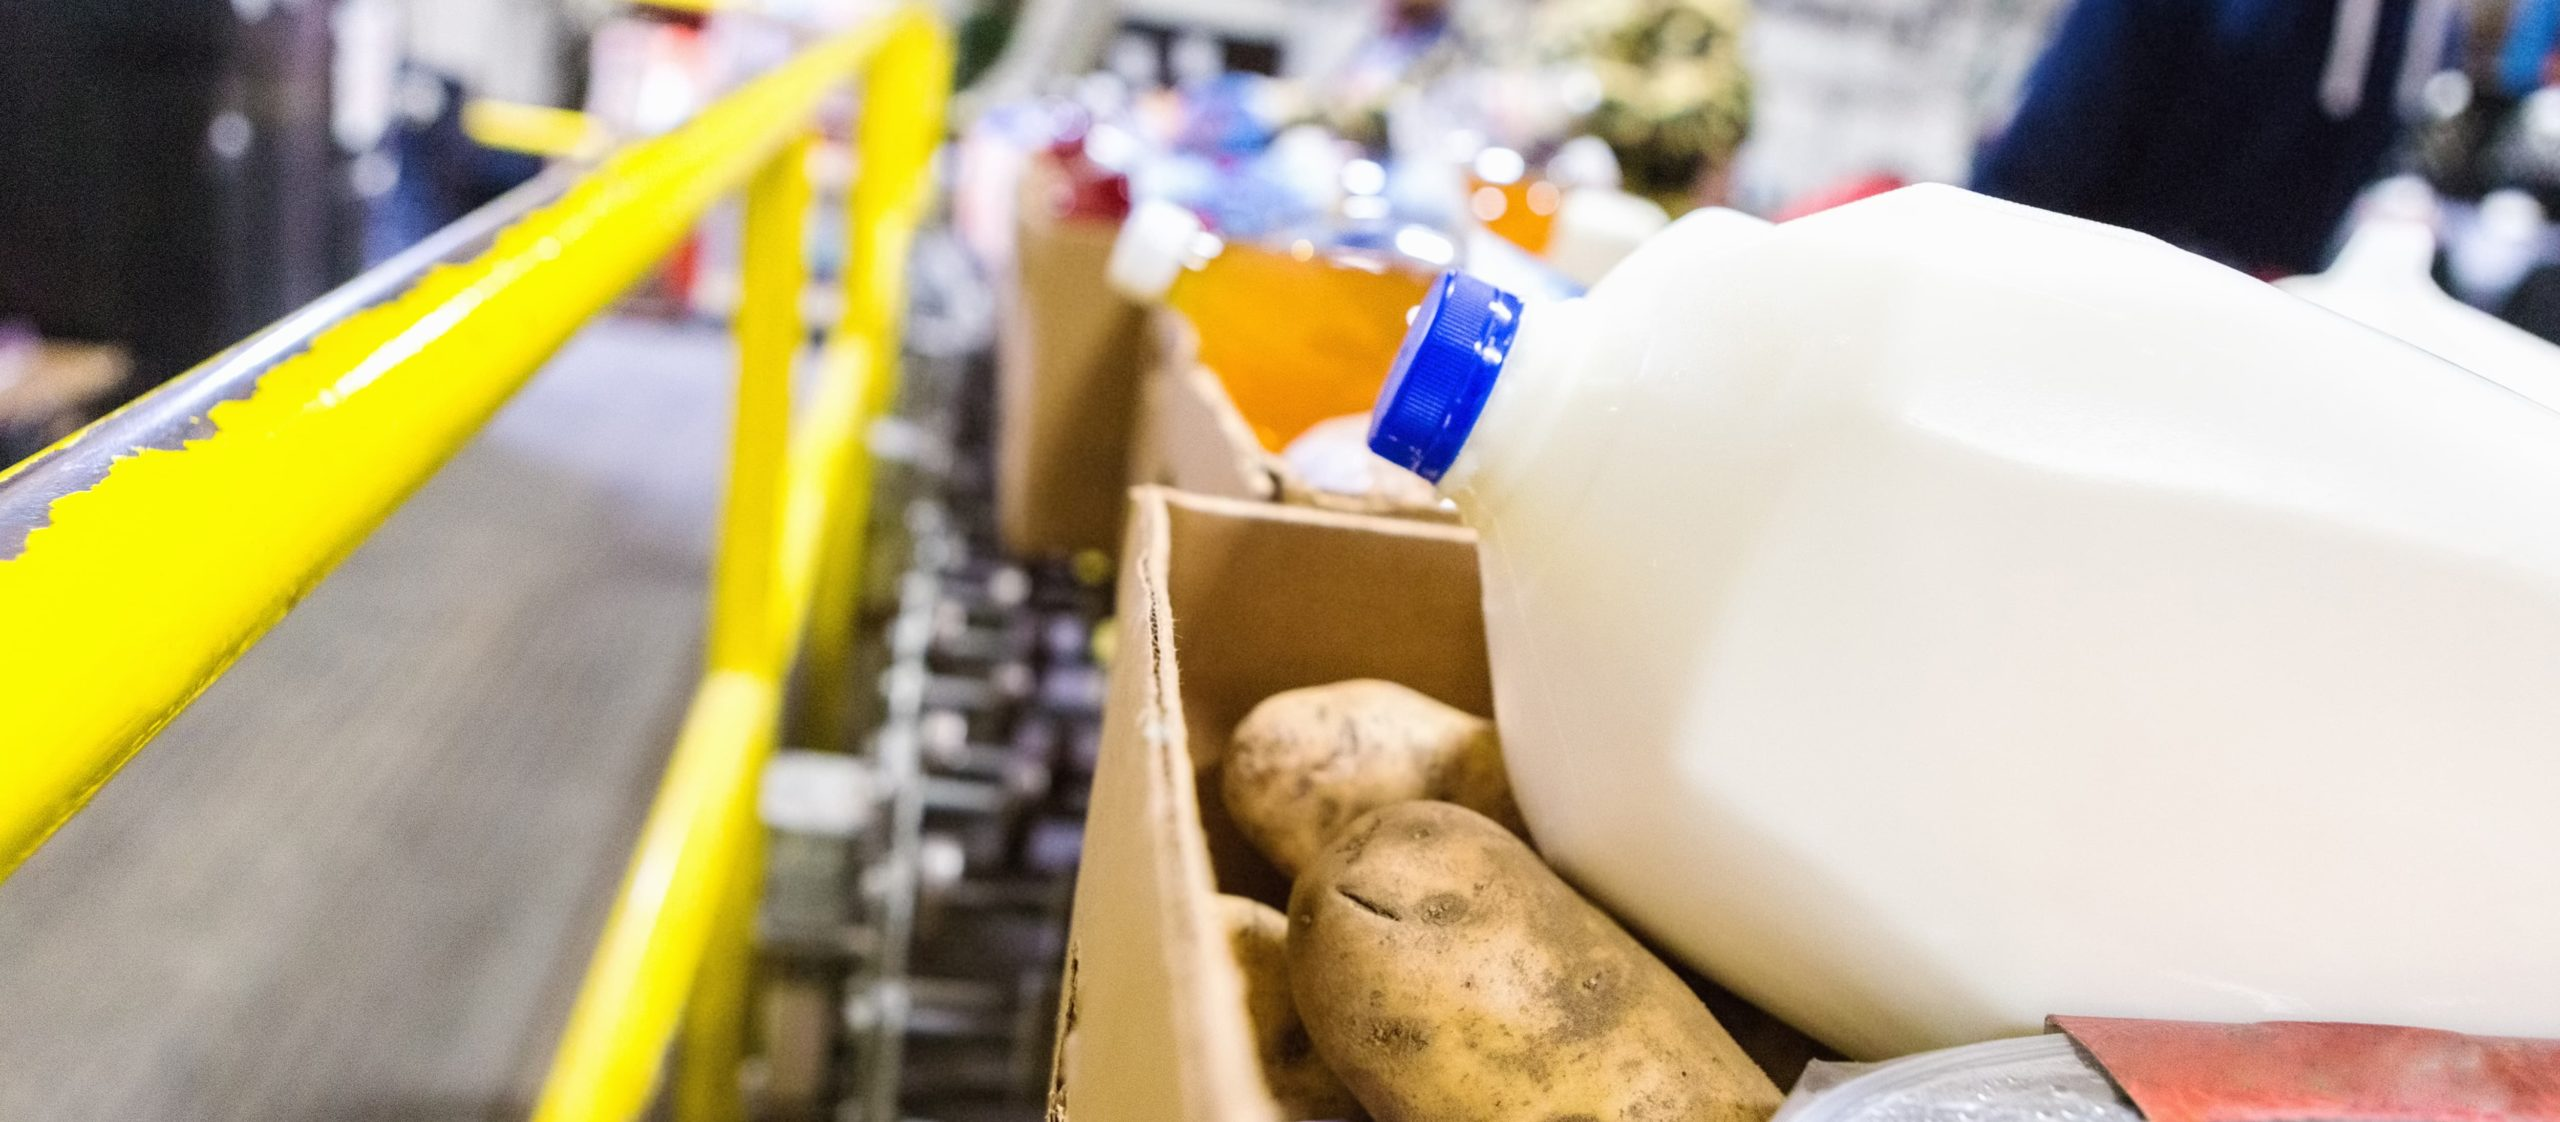 milk and potatoes in a box at feeding America charity